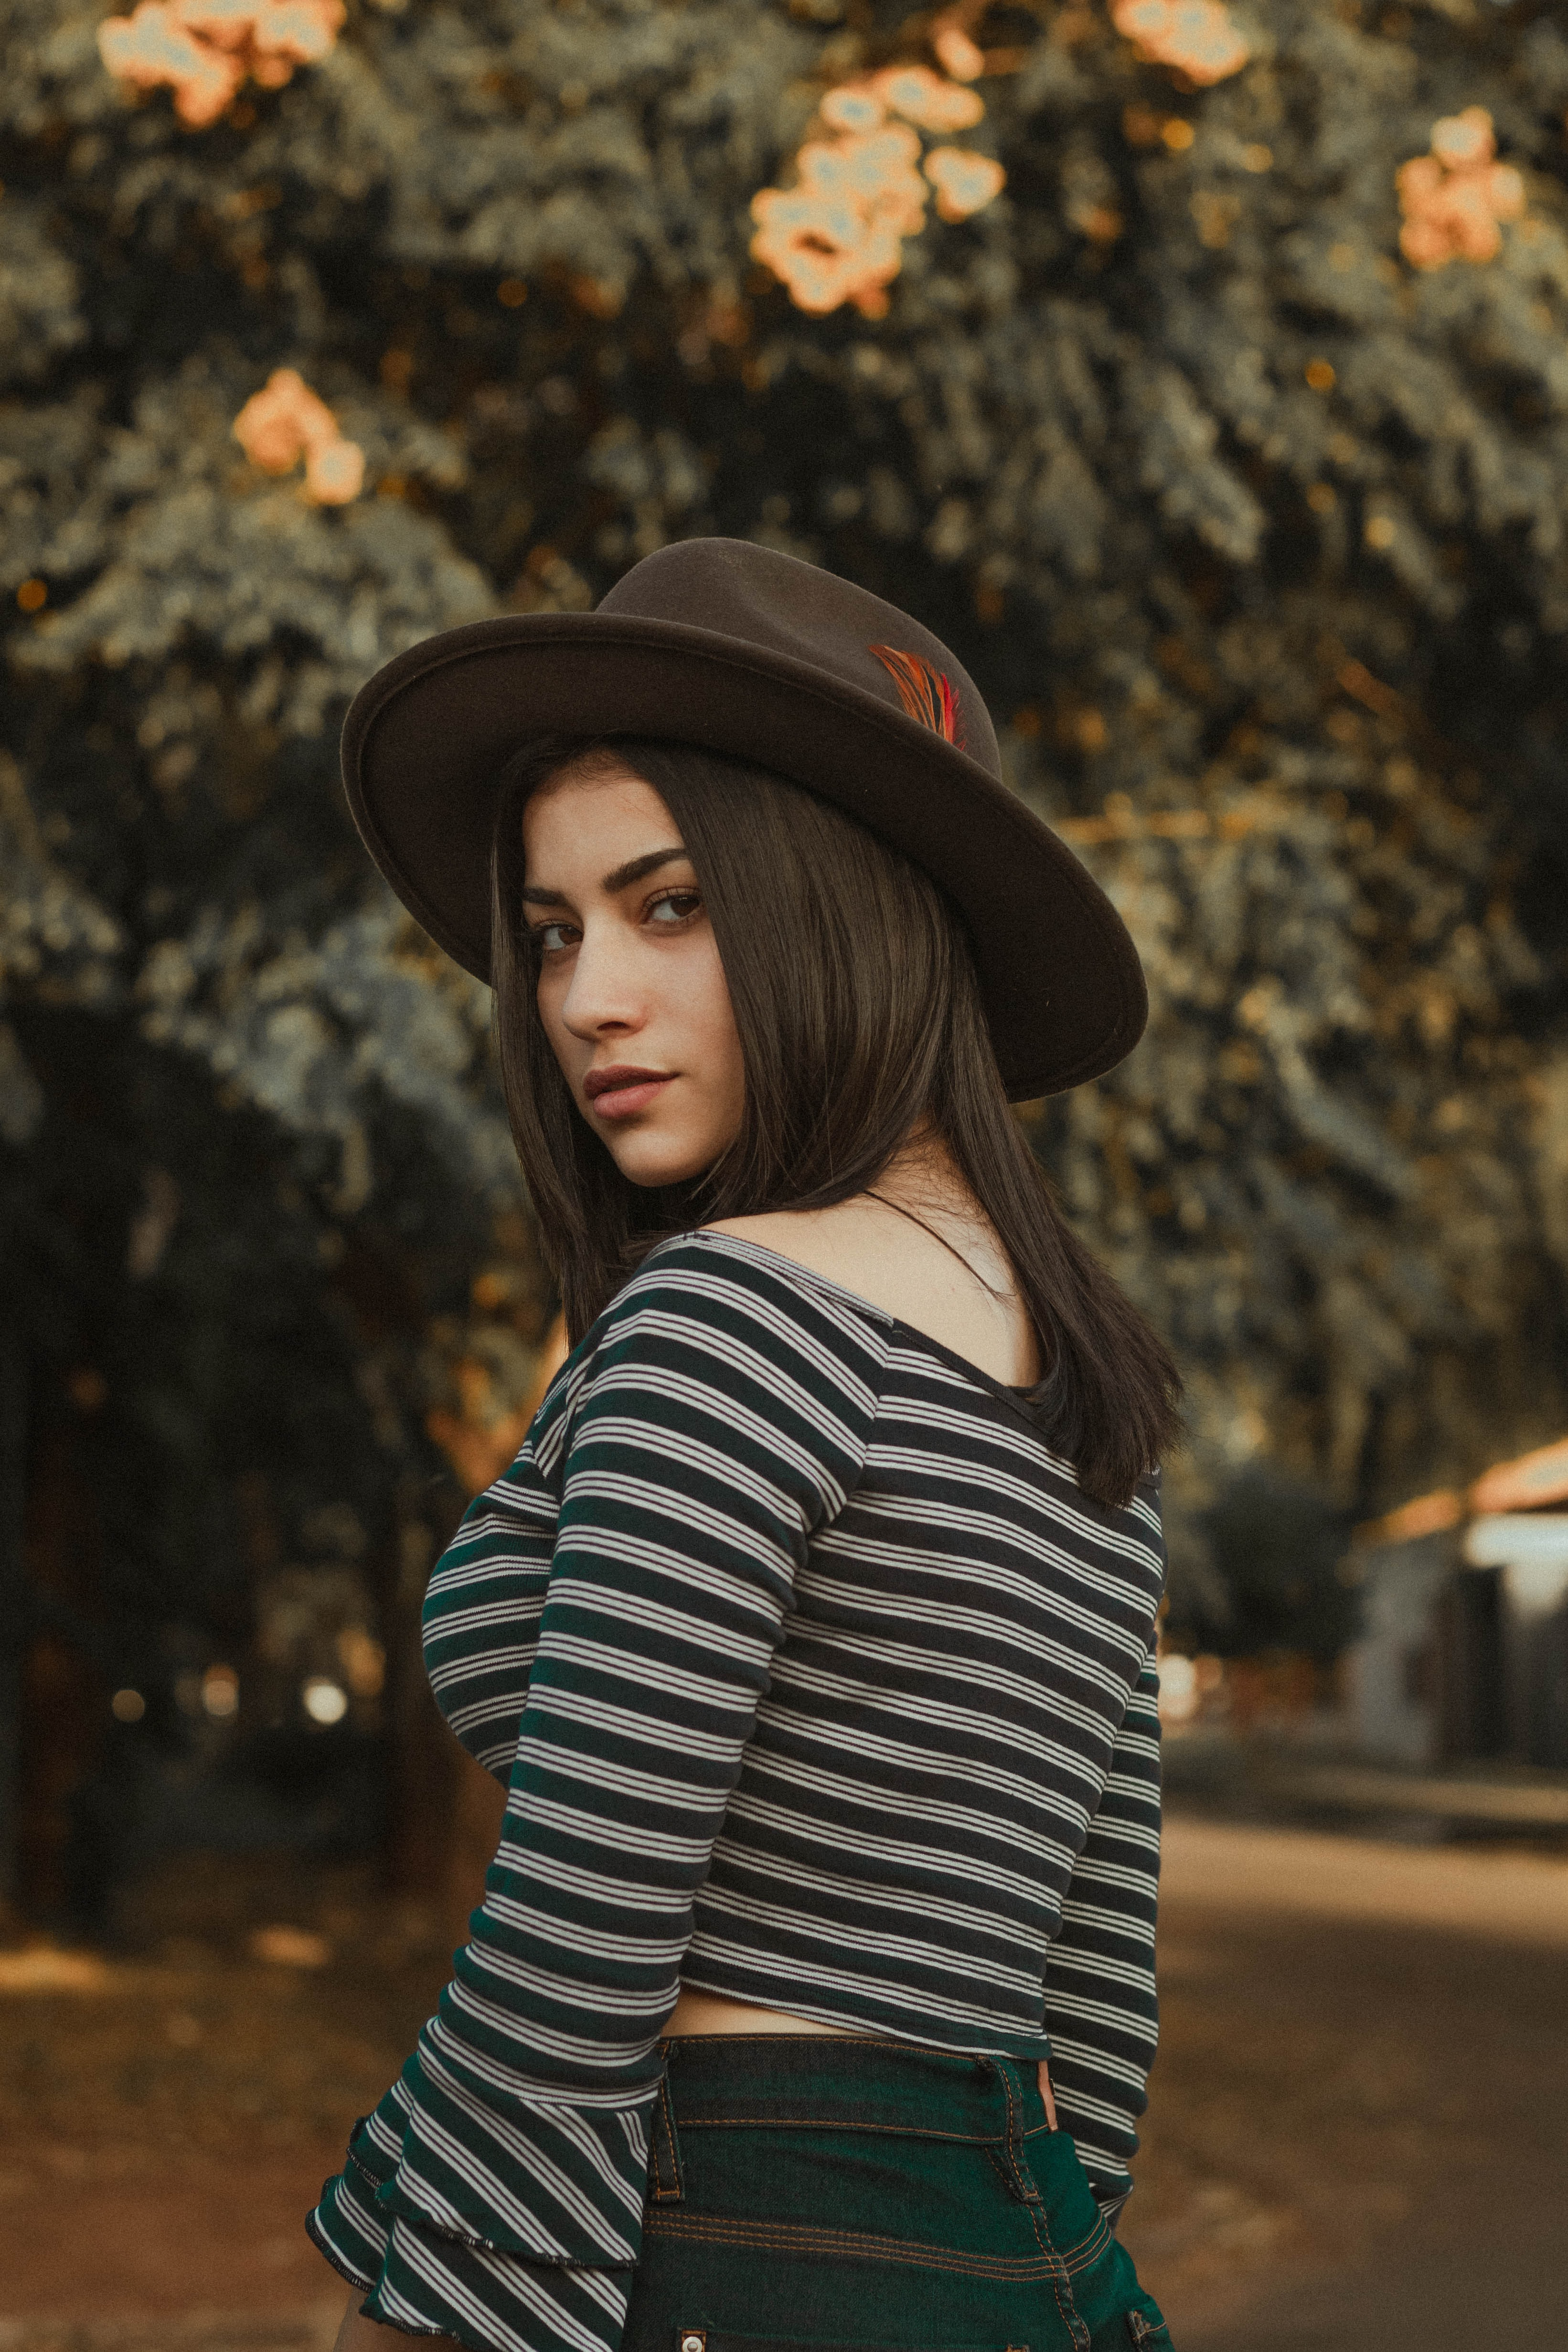 woman wearing gray and black striped shirt and black hat near green tree